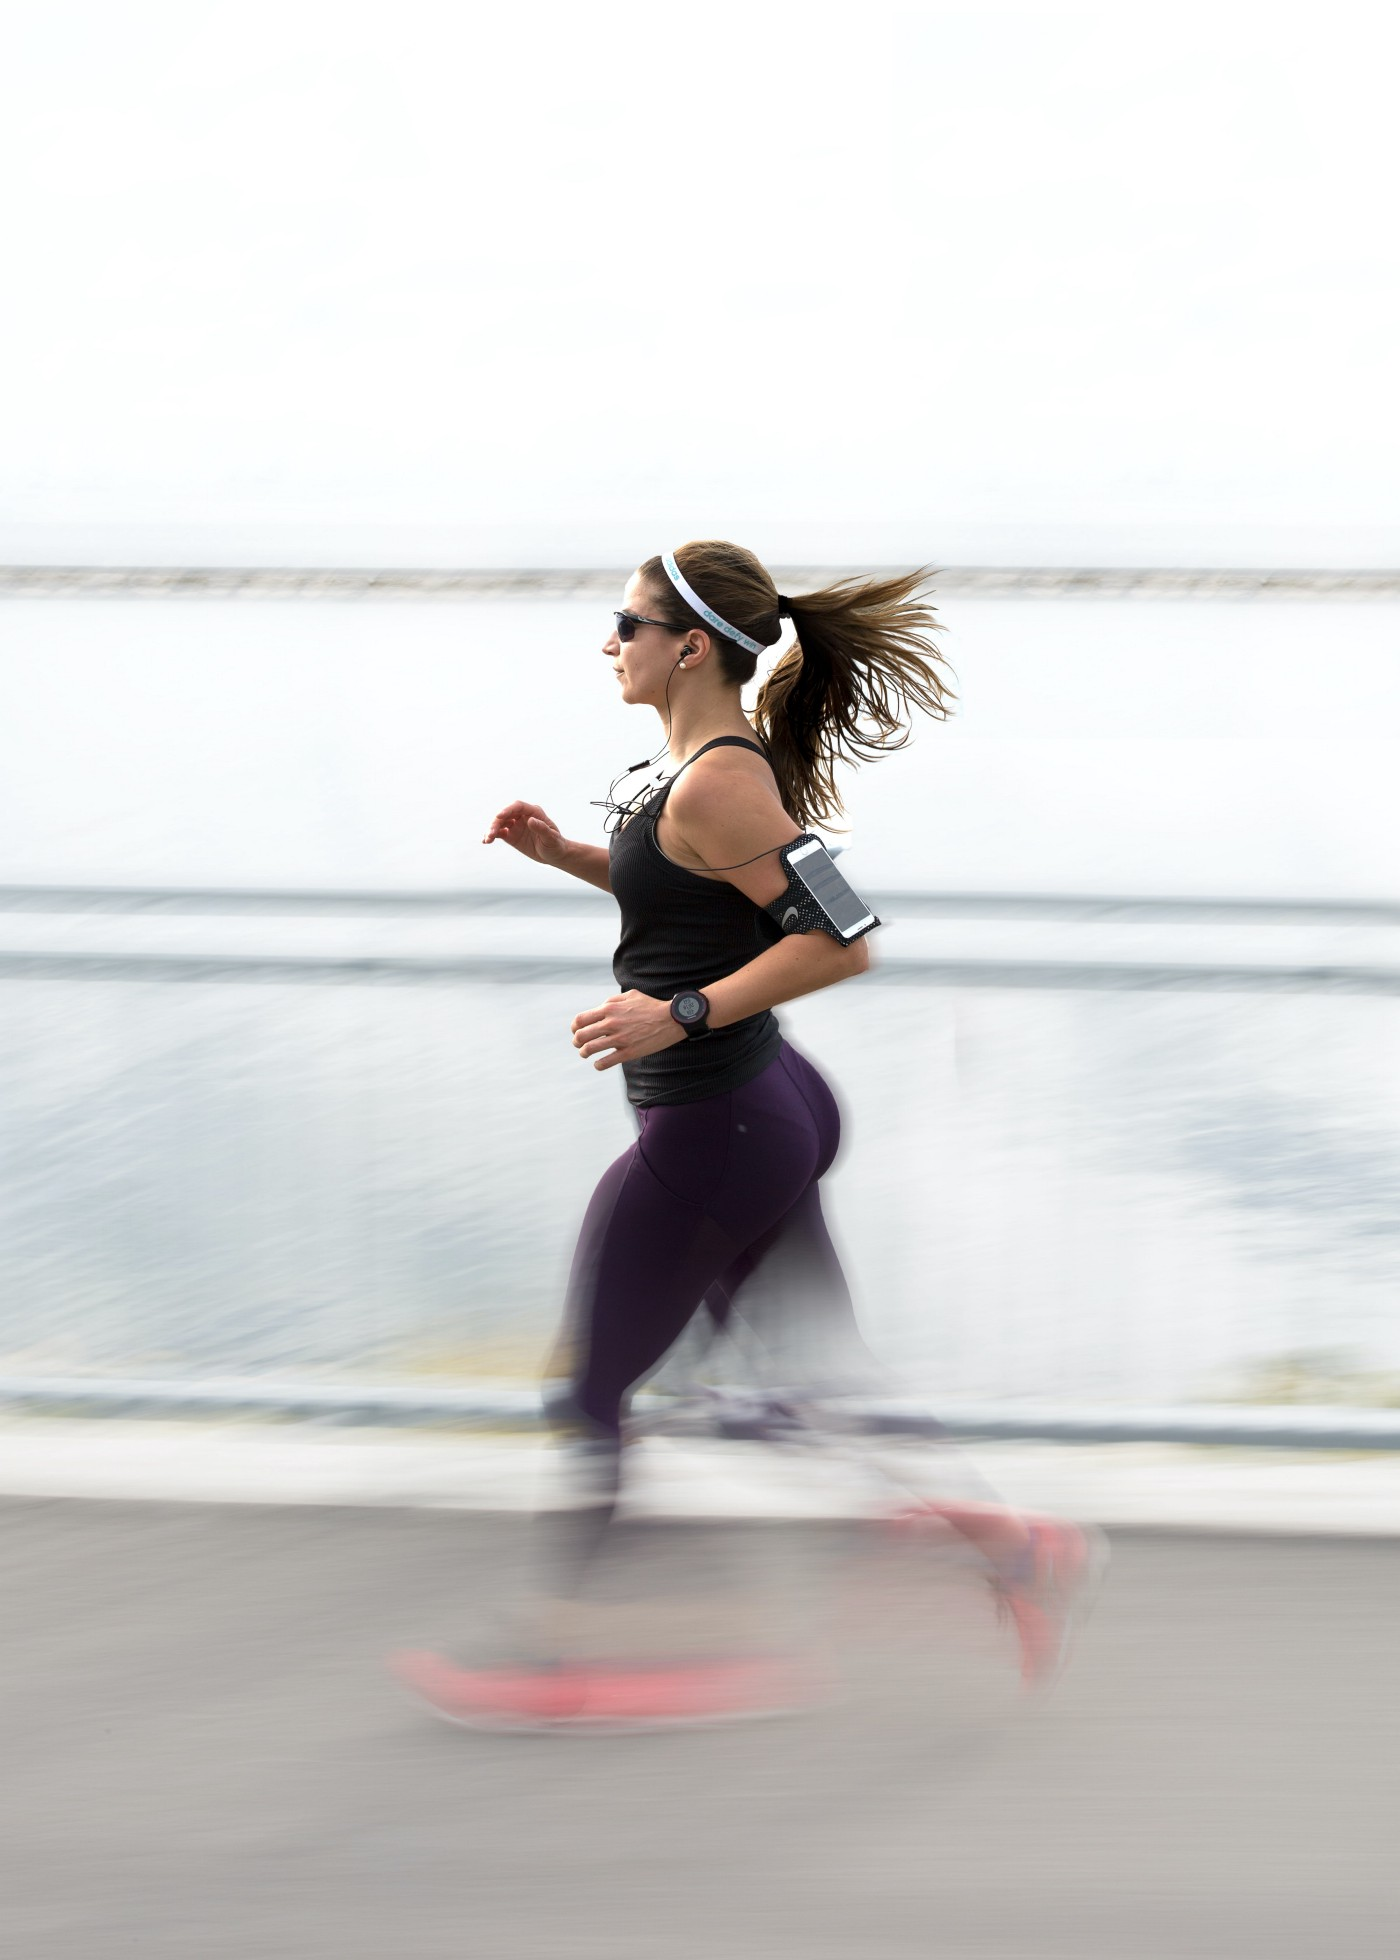 music,running, a women running while listening to music